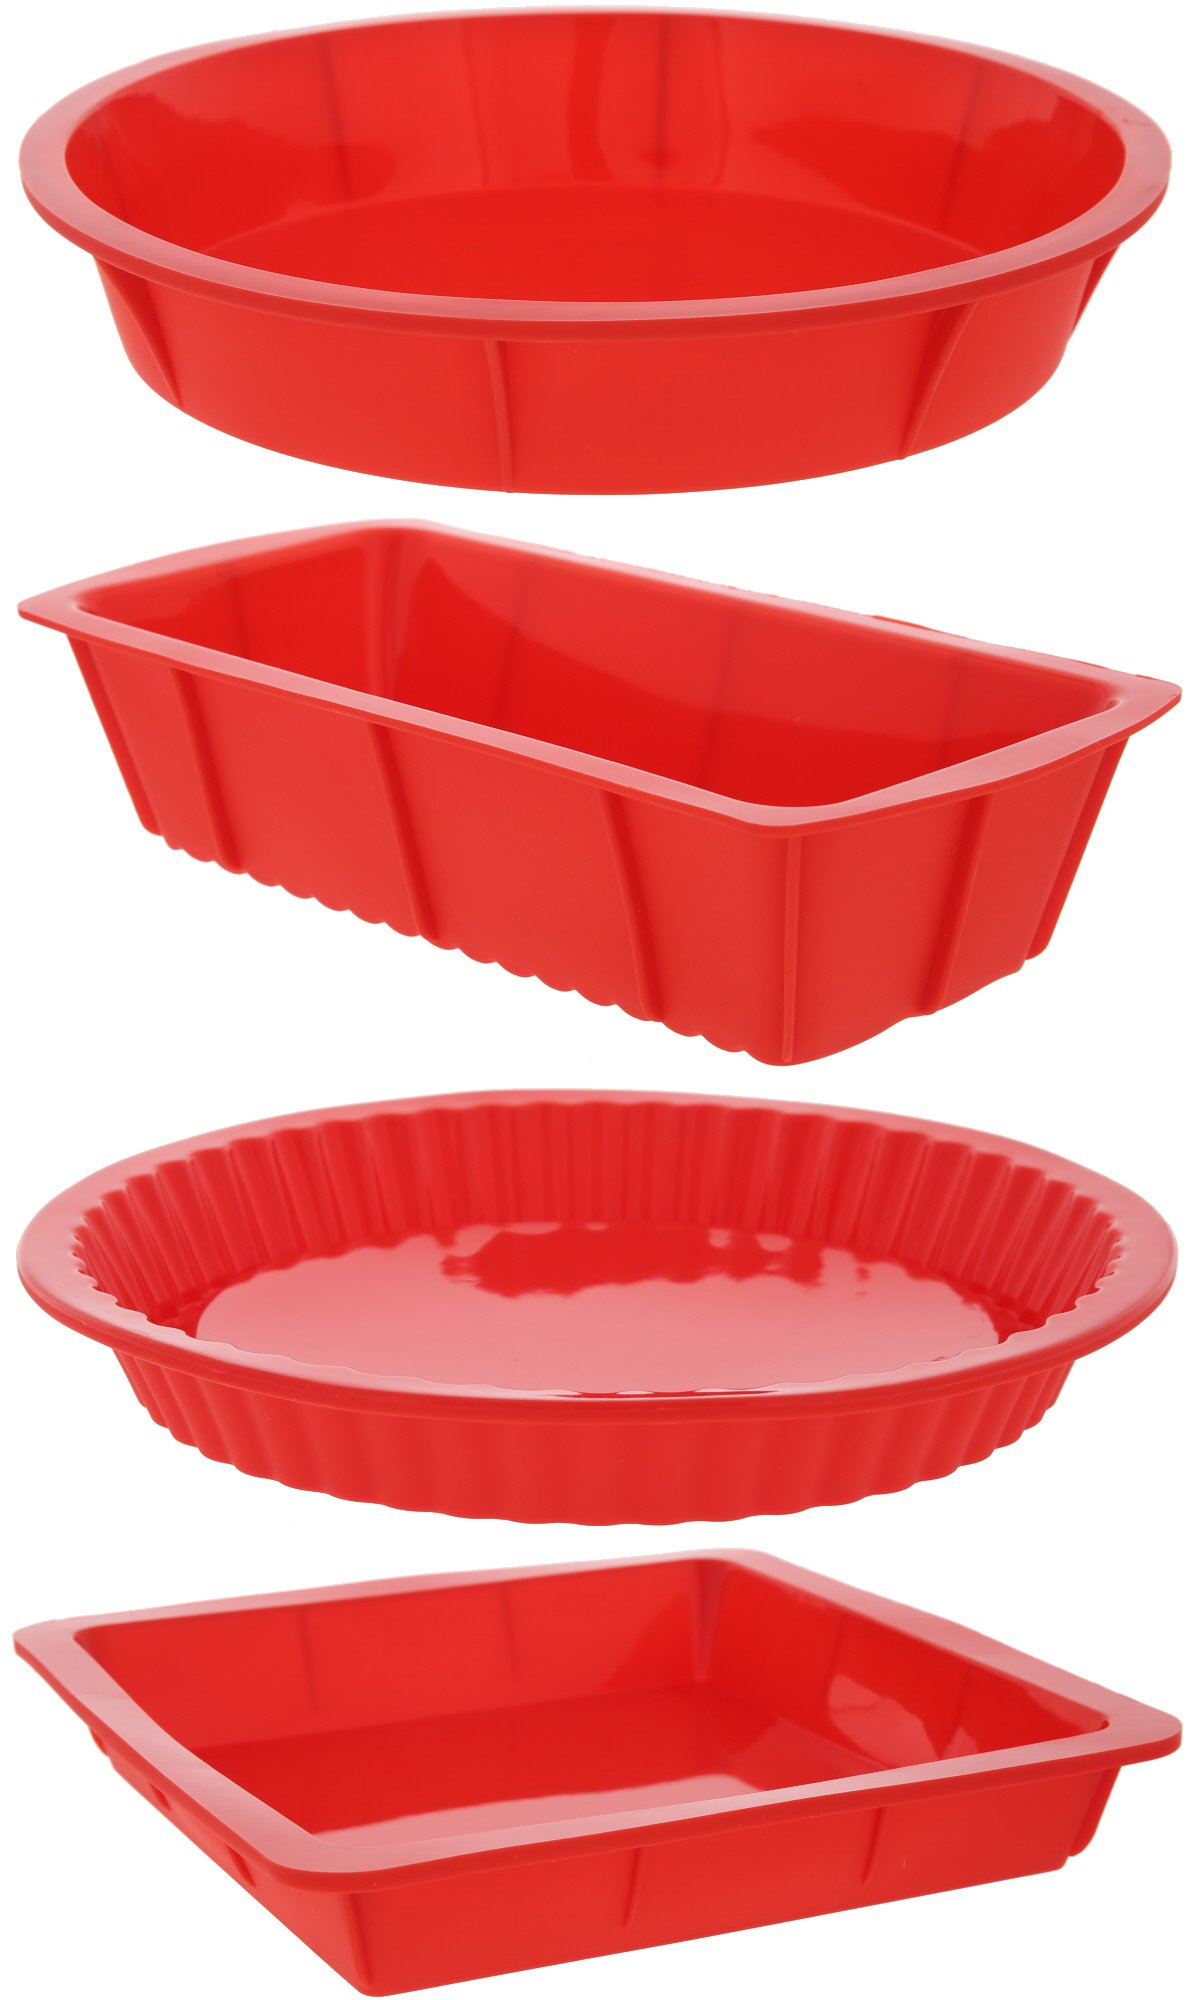 Juvale 4 Piece Bakeware Set - Baking Molds - Nonstick Silicone Bakeware Set Round, Square Rectangular Pans Pies, Cakes, Loaf More - Red, Sizes: 10.5'', 9.5'', 10''